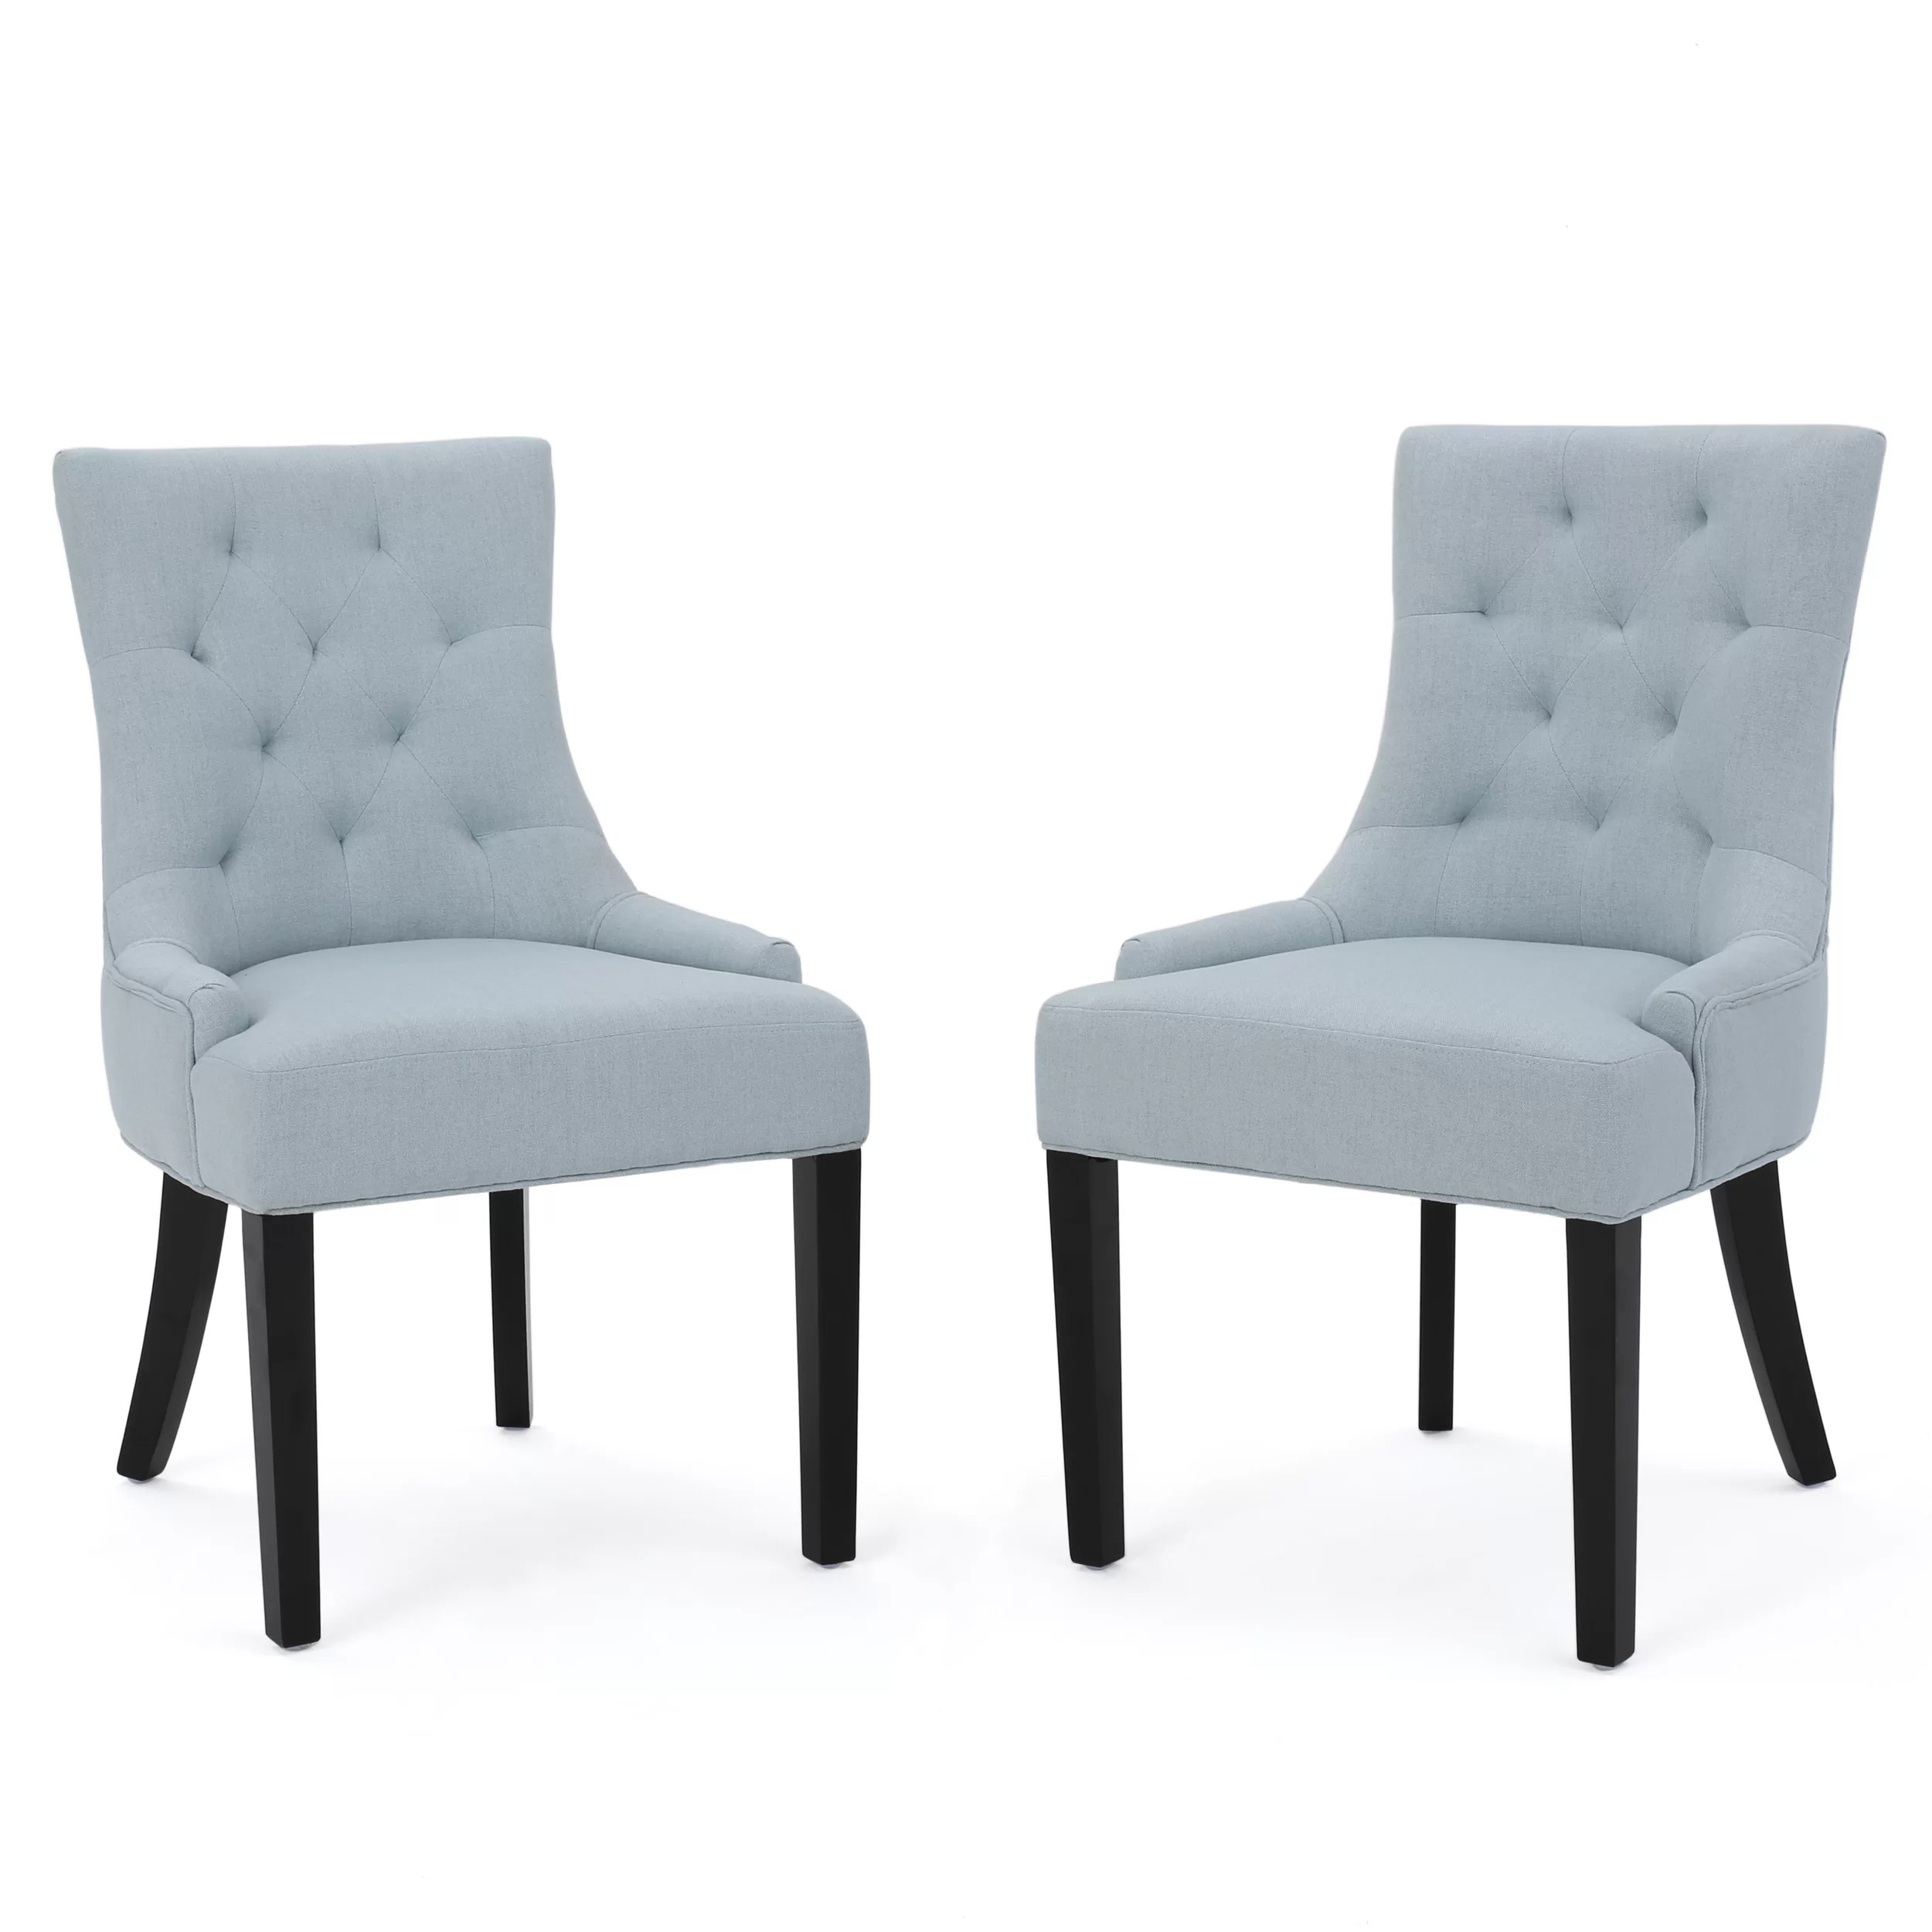 Dining Chair Set Of 2 Grandview Upholstered Dining Chairs Set Of 2